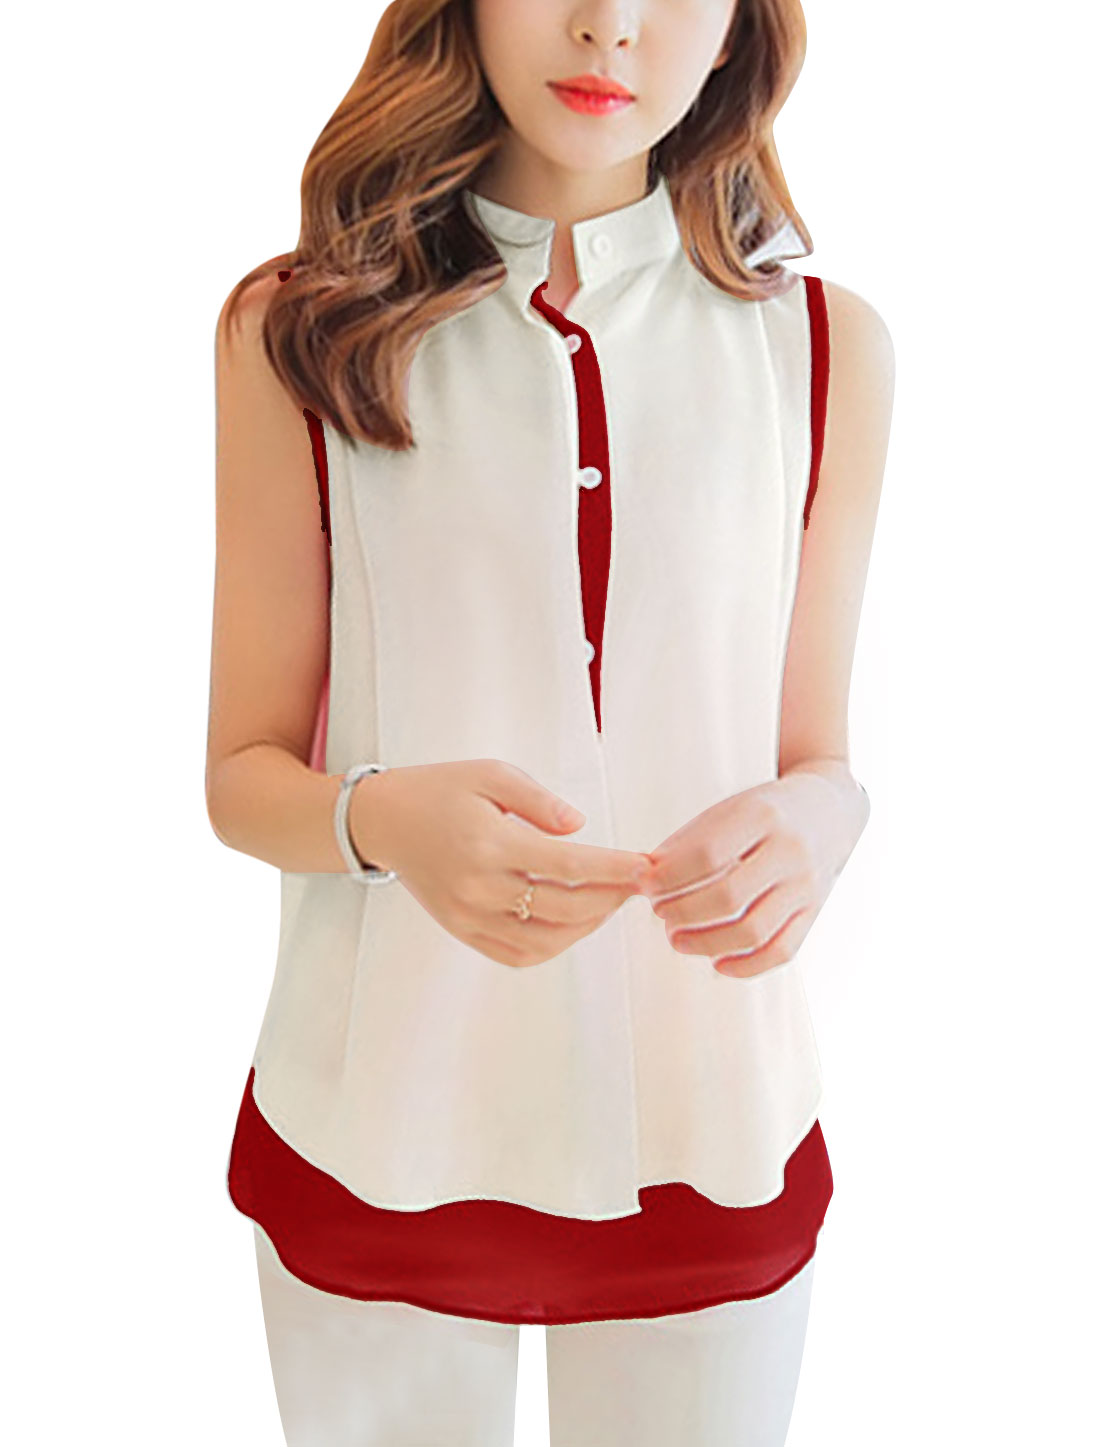 Ladies See Through Chiffon Tank Top w Stand Collar Chiffon Shirt Beige Burgundy S